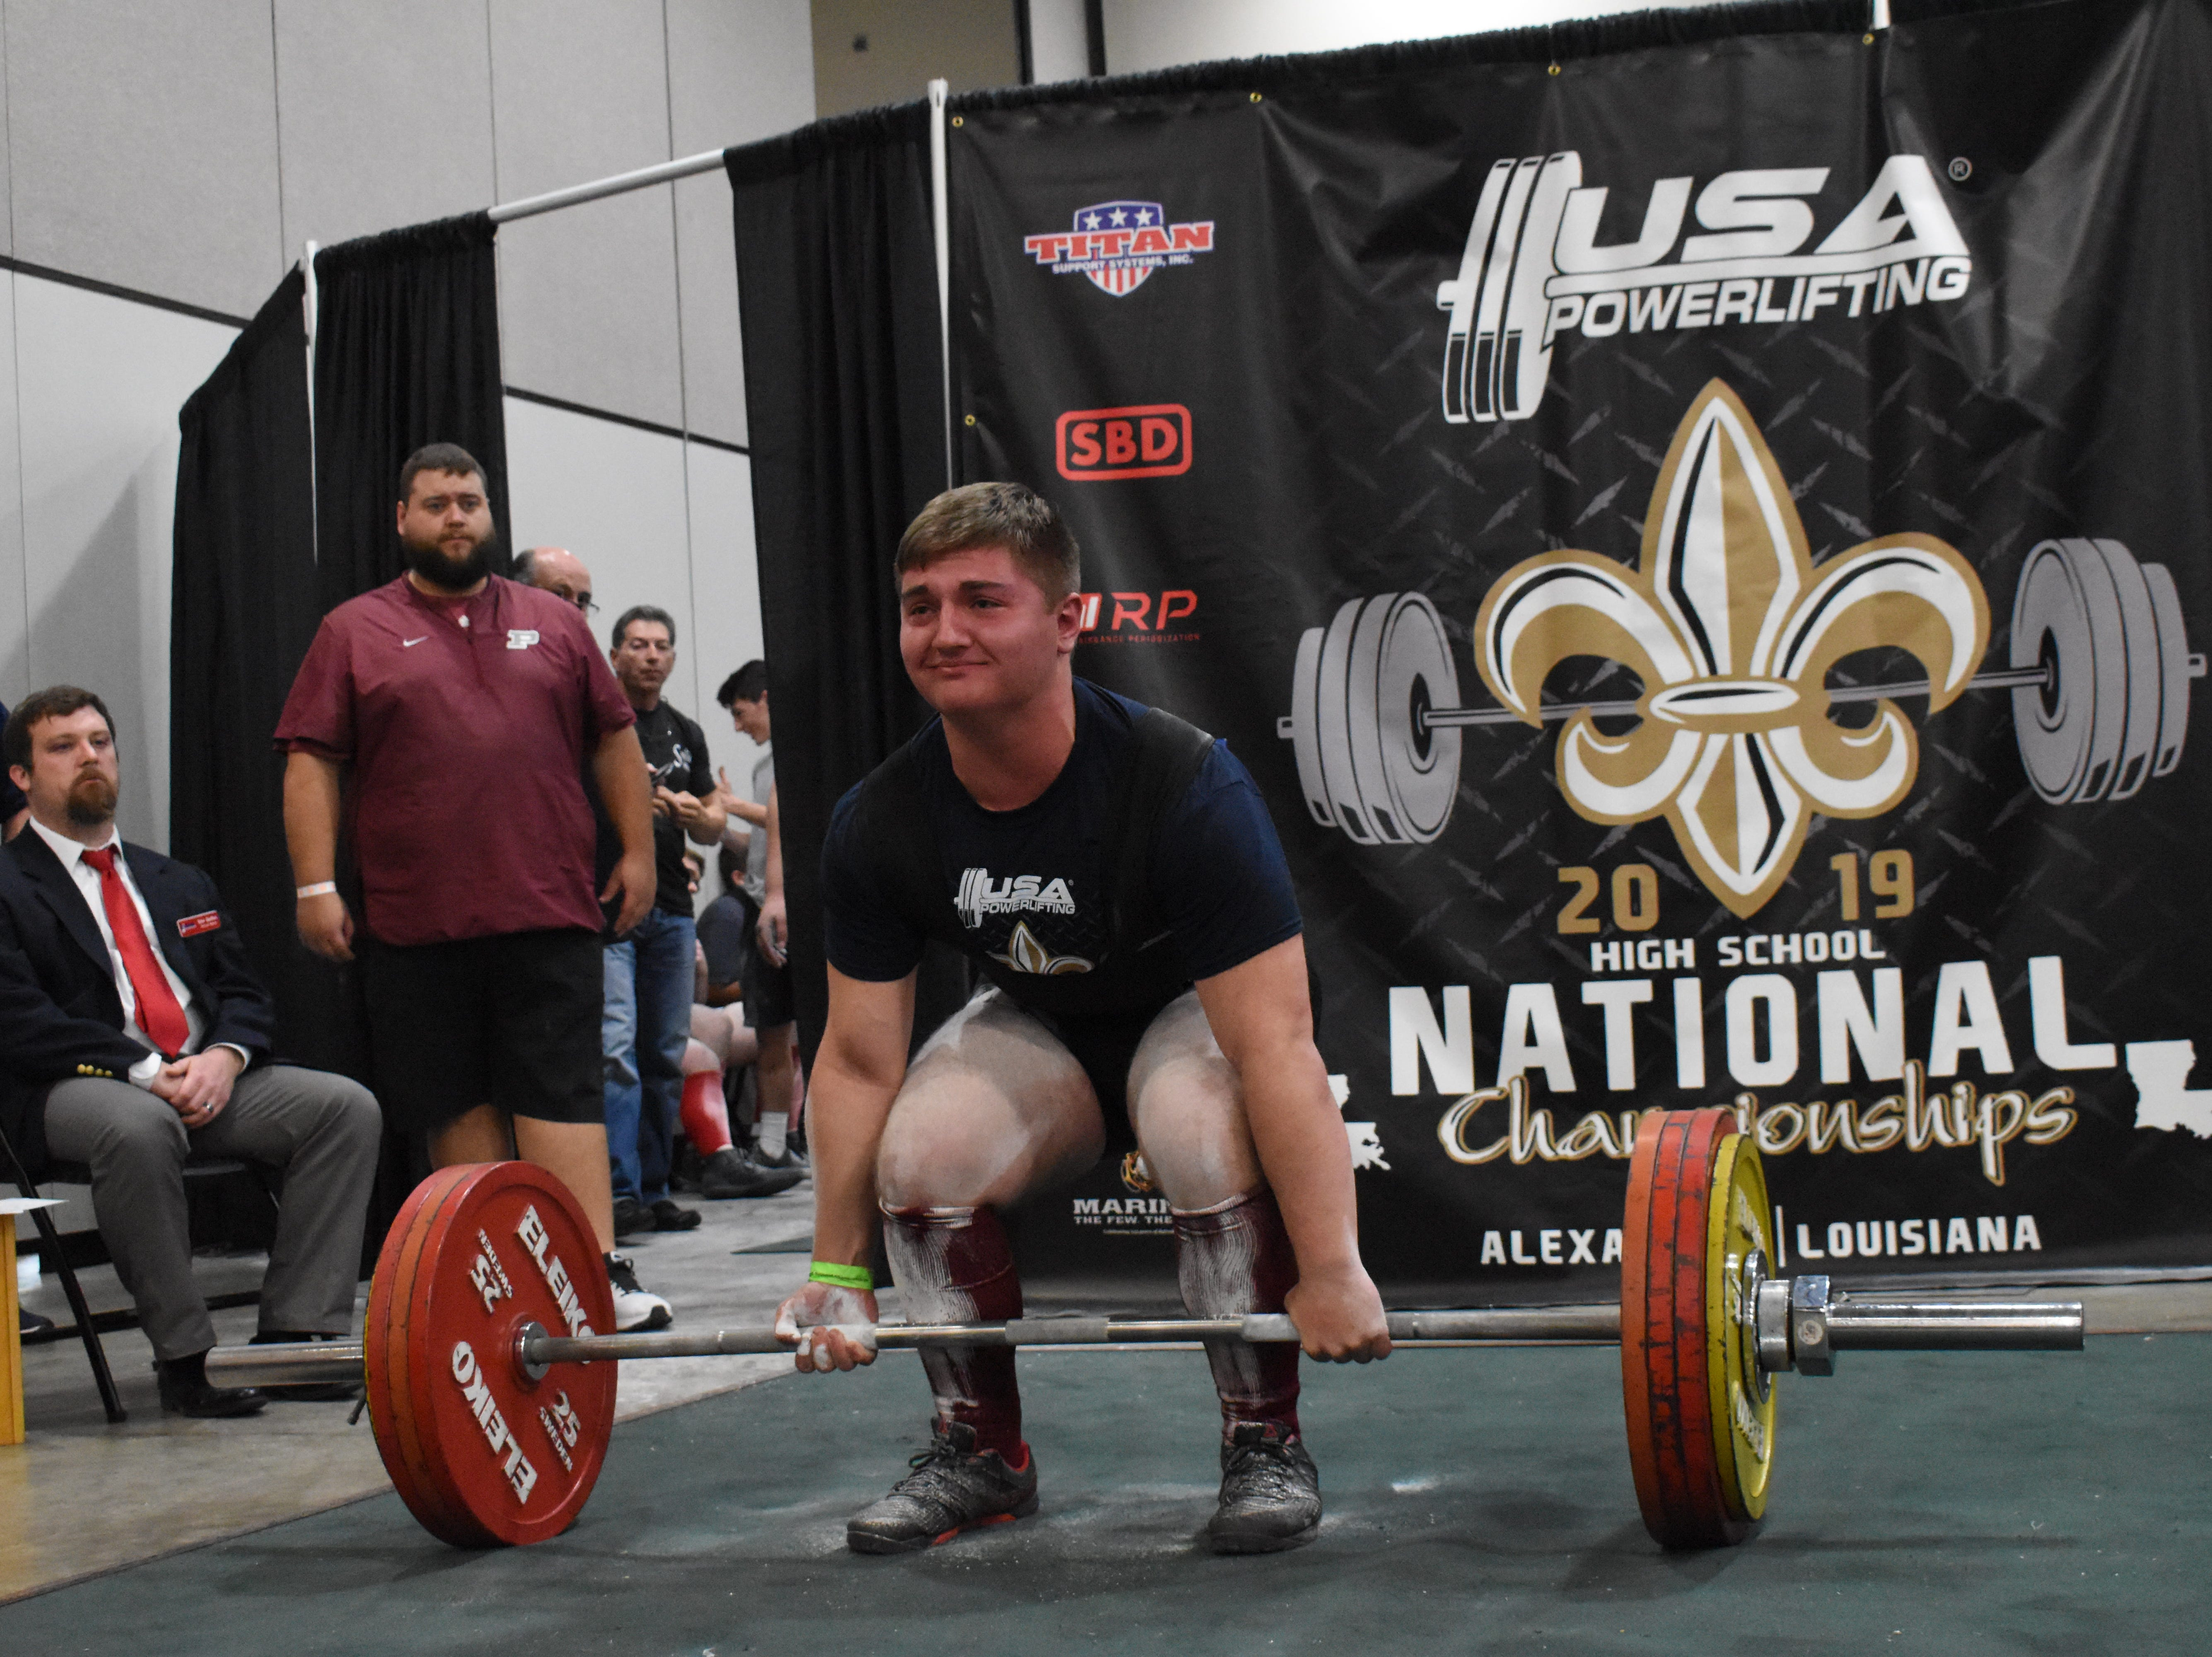 Gabriel Knapp of Pineville High School performs a deadlift in the The USA Powerlifting High School National Championships Friday, March 29, 2019. The championships, equipped and raw, are being held at the Randolph Riverfront Center in downtown Alexandria with high school powerlifters from across the country competing in the four-day event. Powerlifters from local schools are also competing.